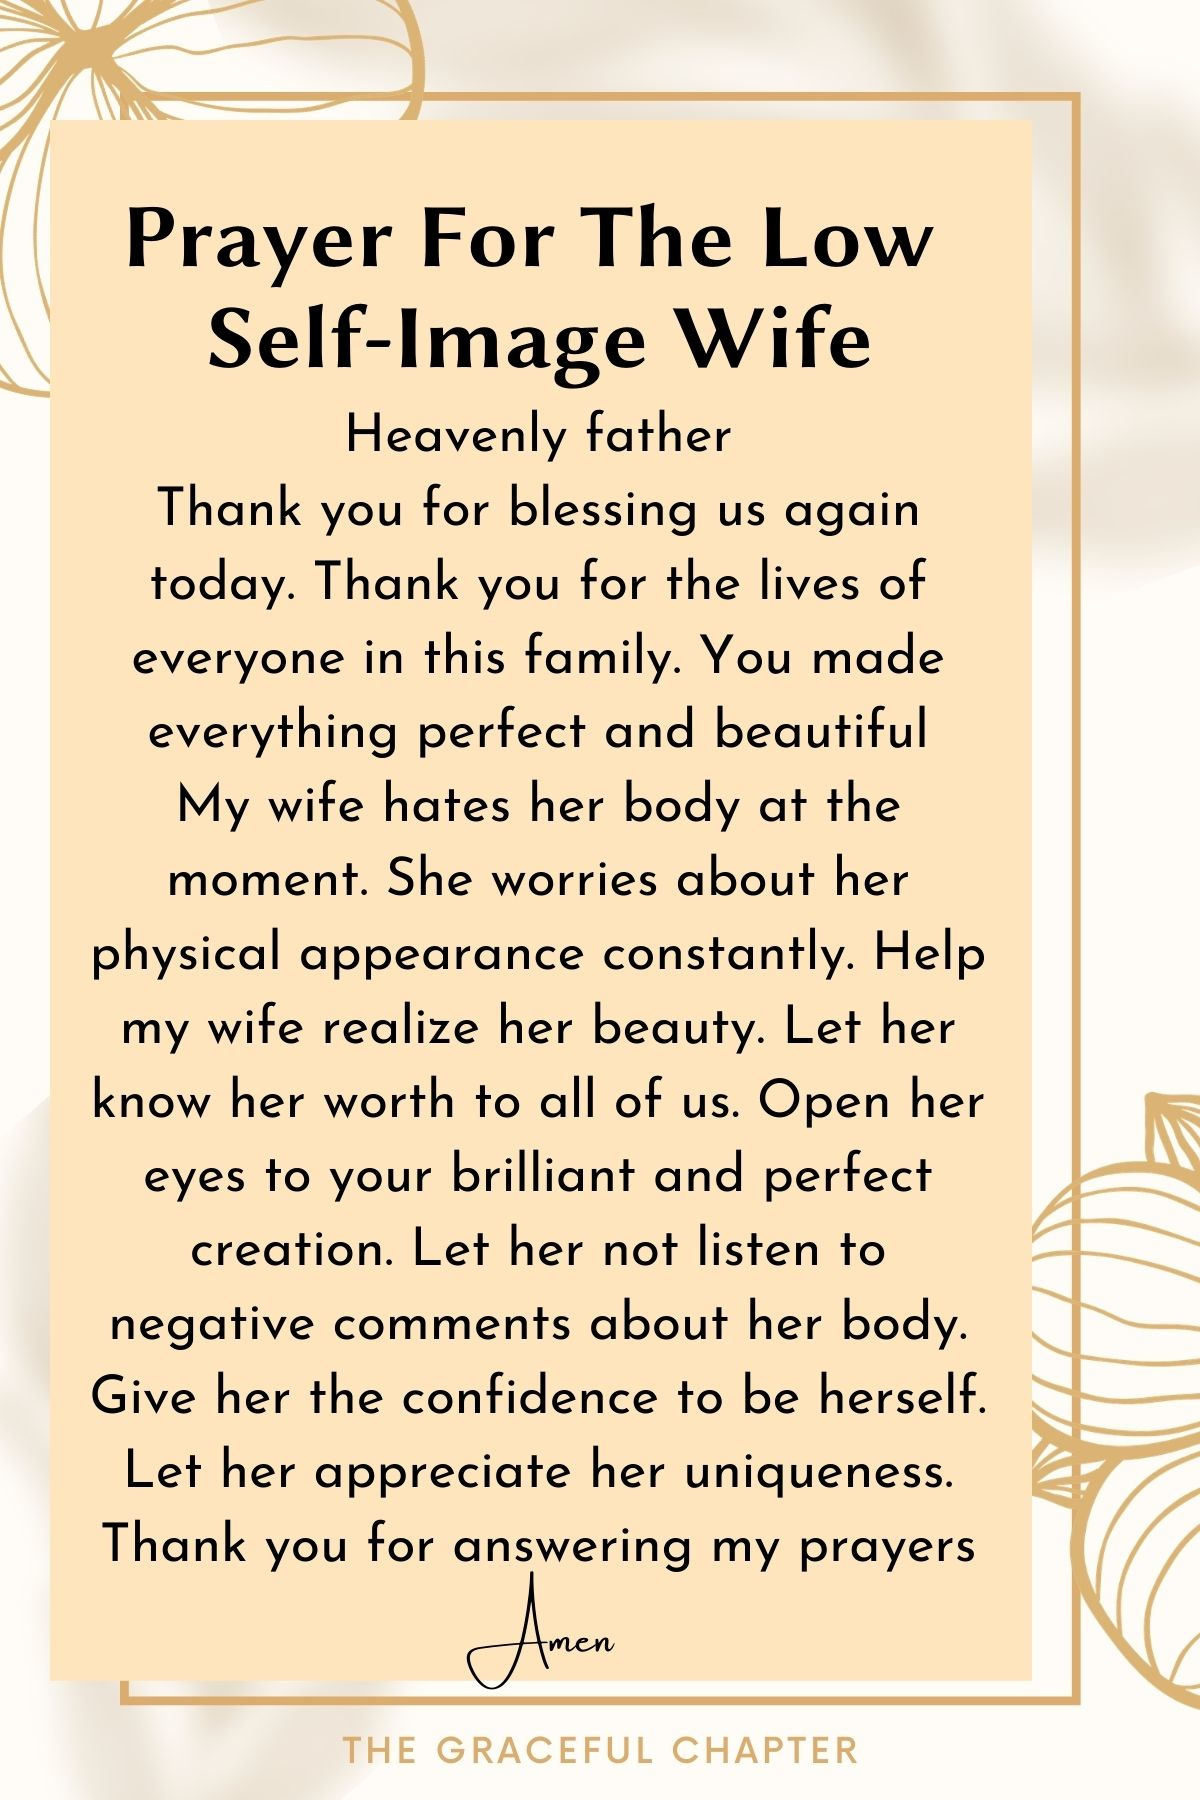 Prayer for the low self-image wife